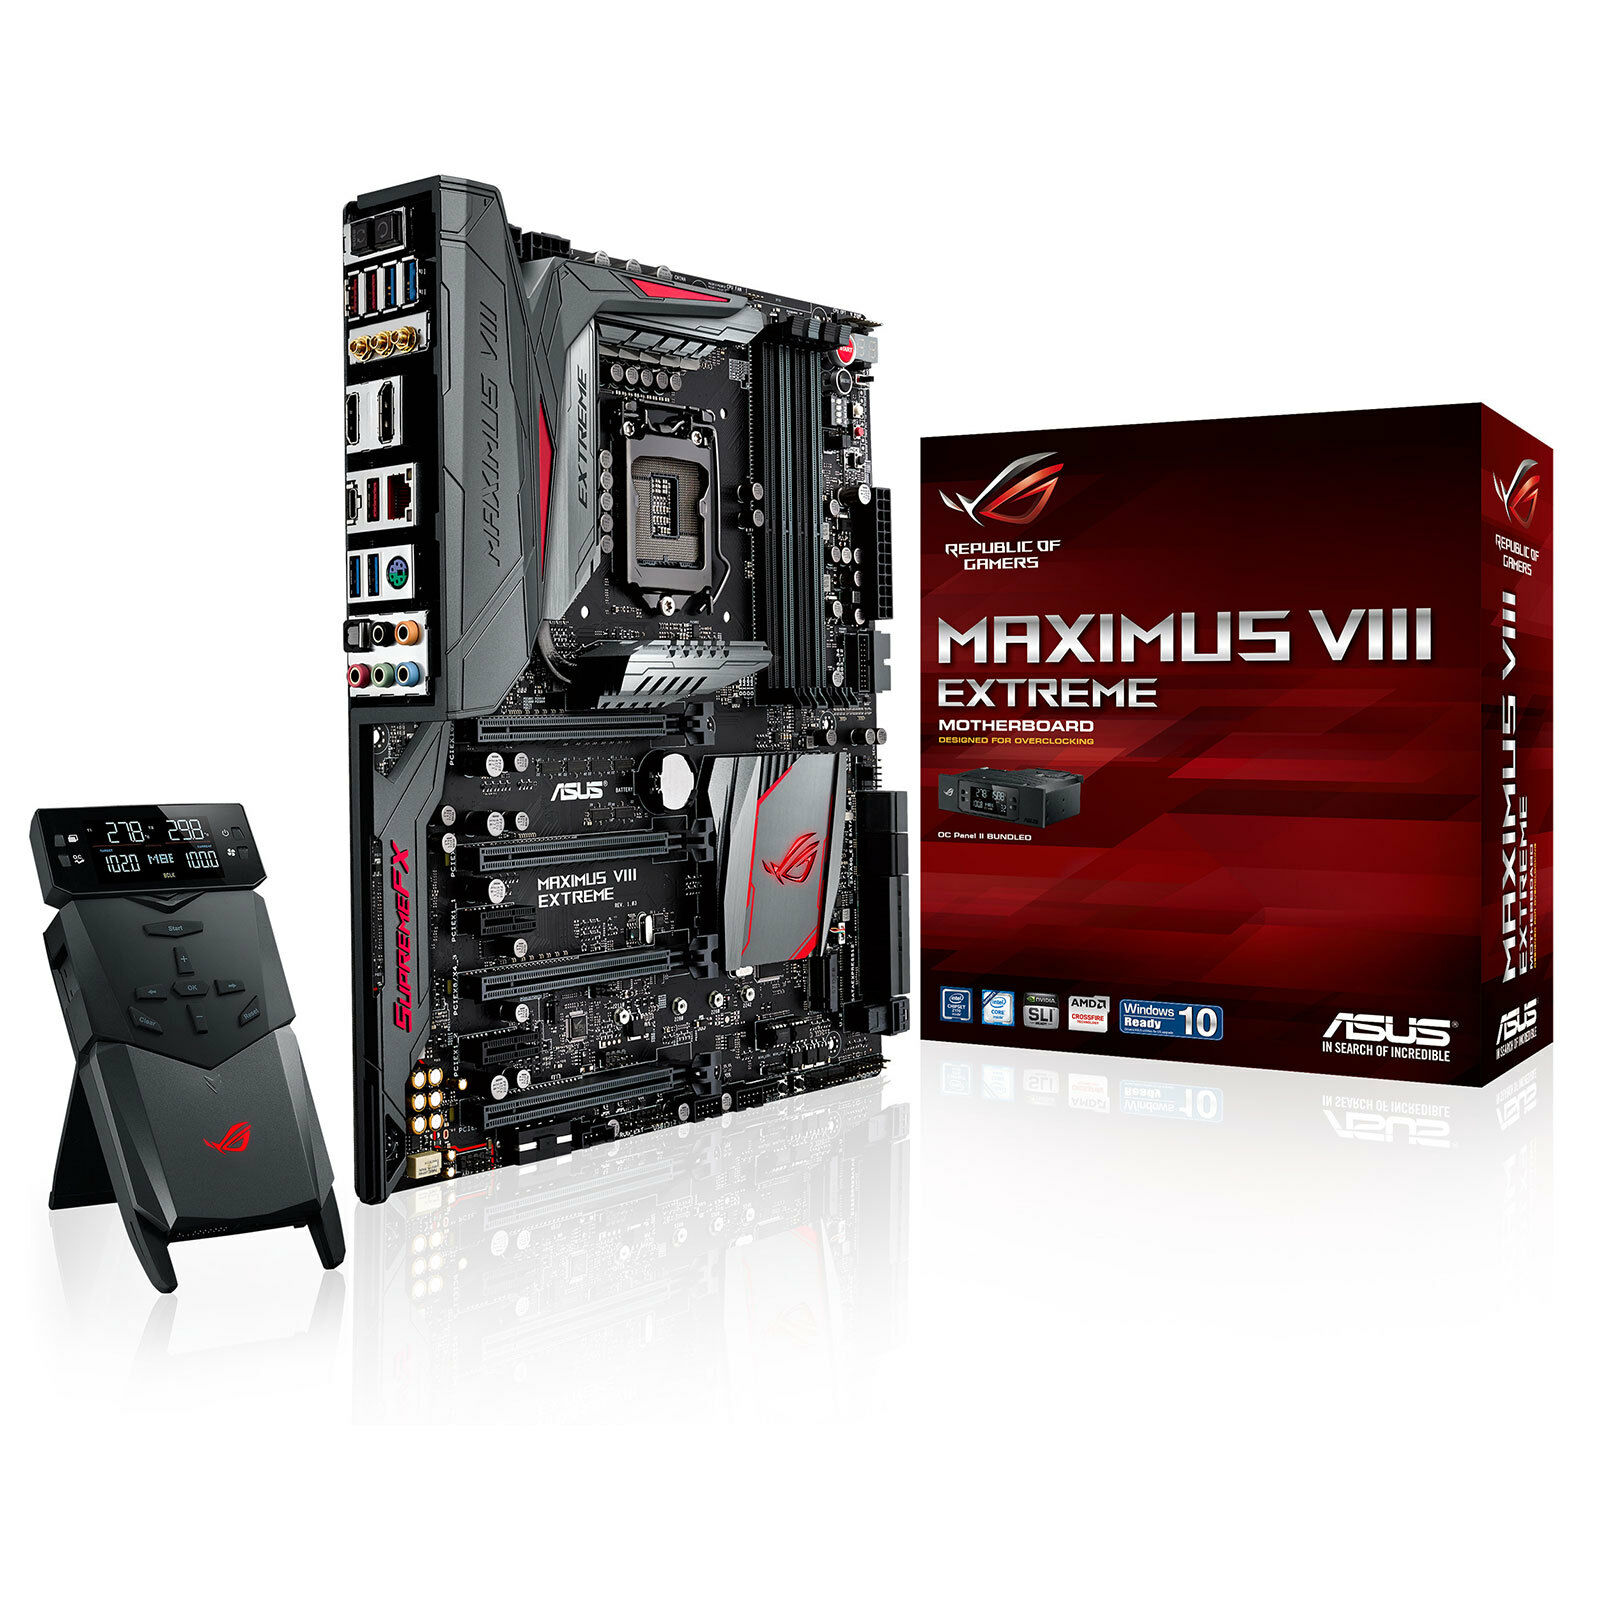 Asus Maximus Viii Extreme - Atx Motherboard For Intel Socket 1151 Cpus